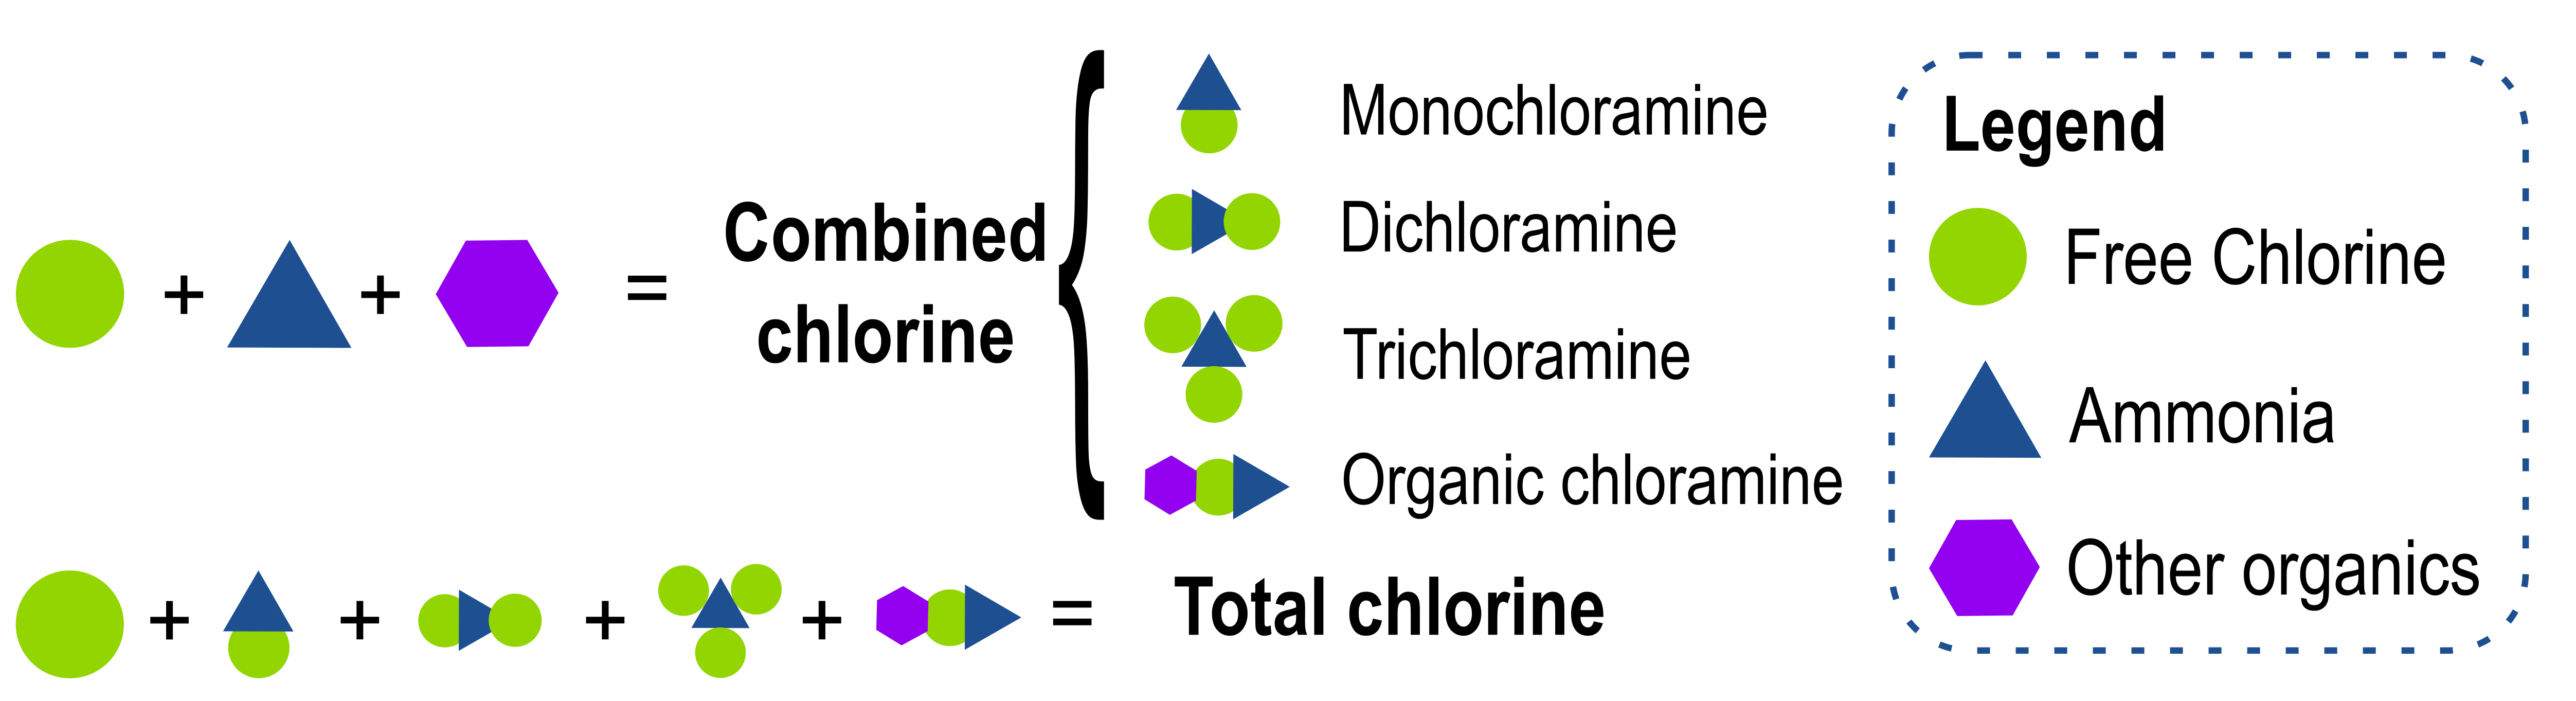 Free, combined, and total chlorine